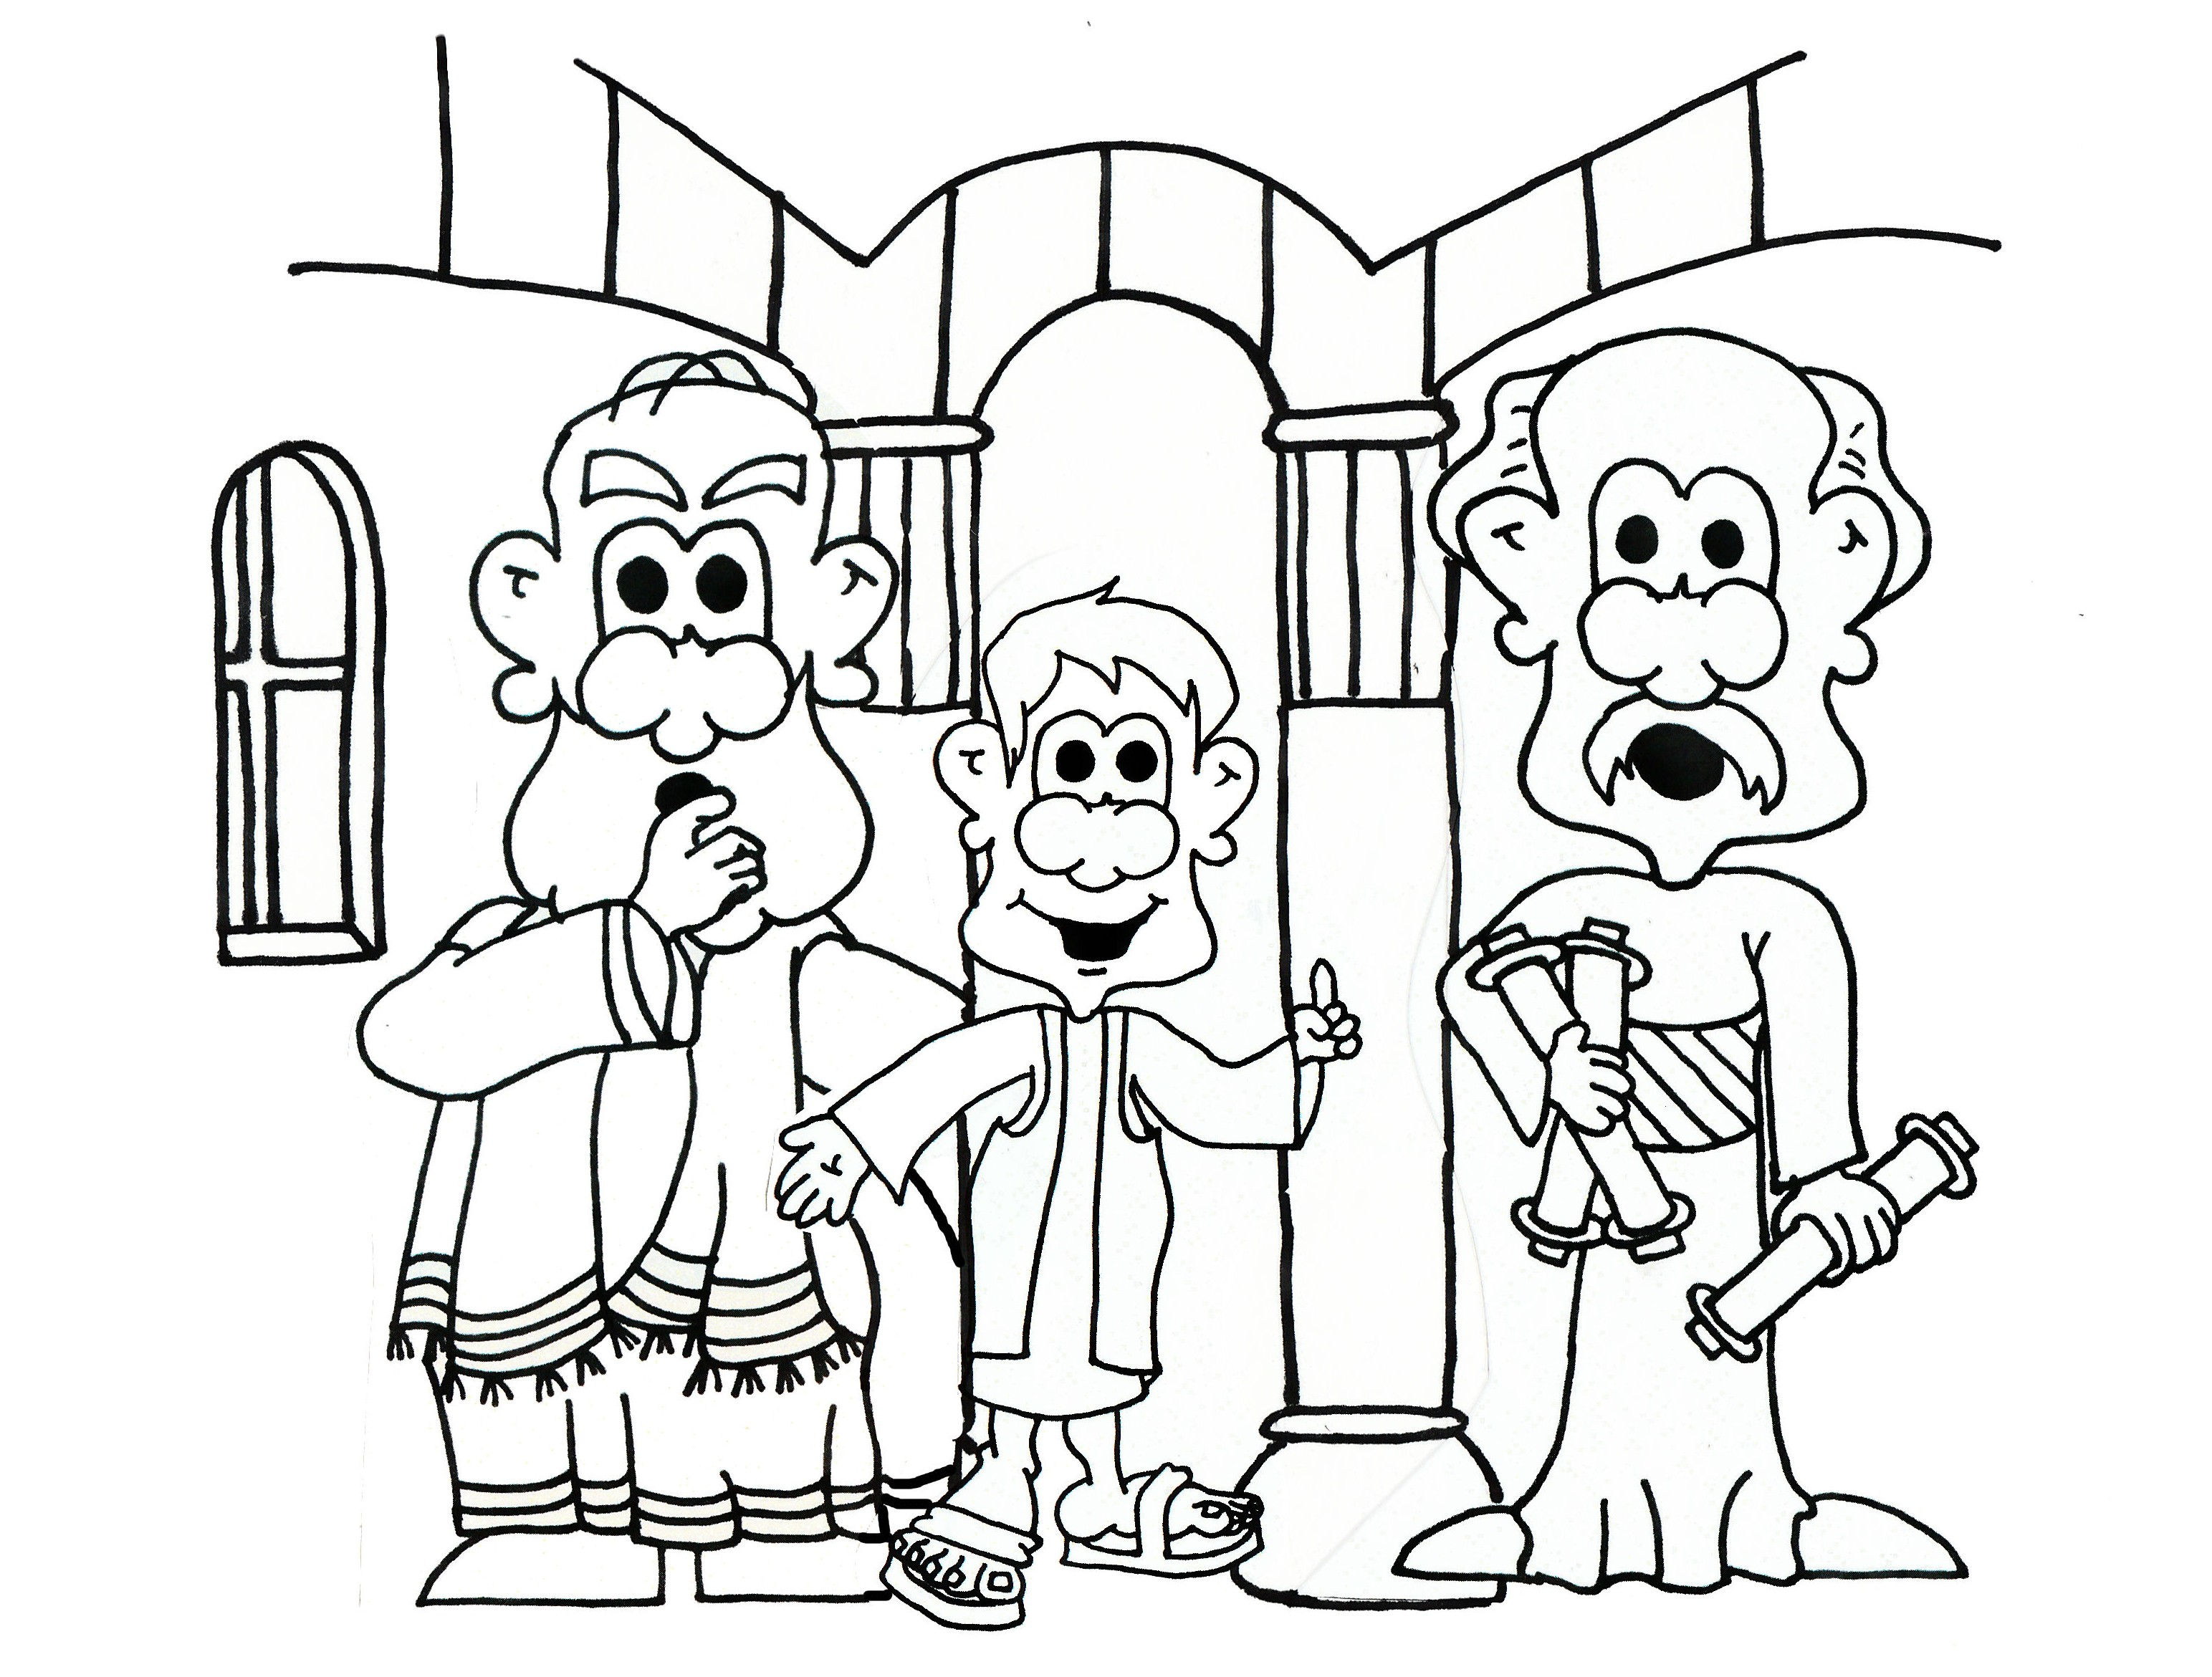 jesus teaching in the temple coloring page - lesson 5 jesus christ is the son of heavenly father